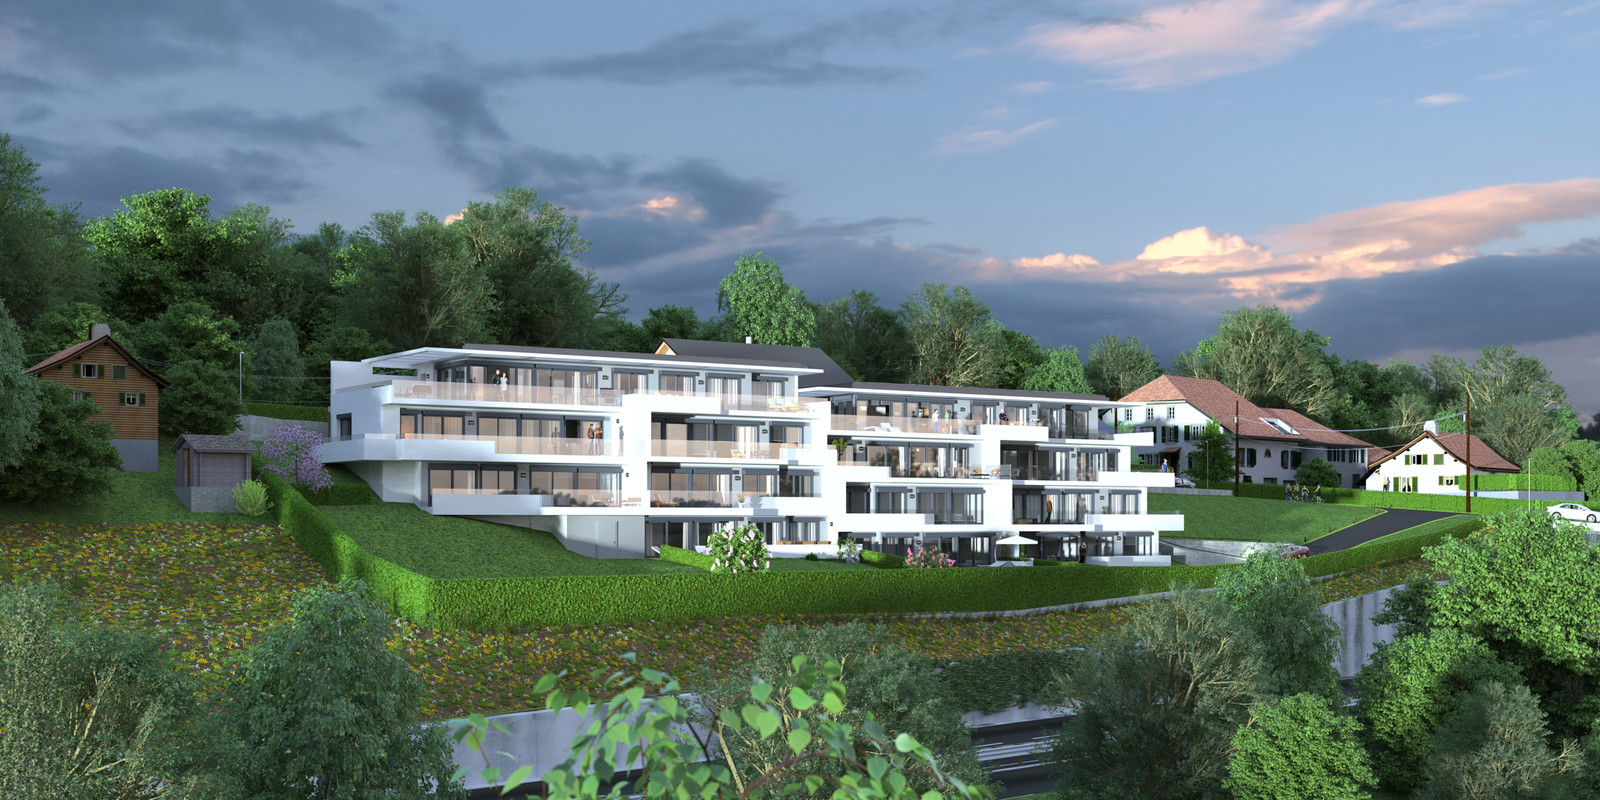 SketchUp 2018 + Thea Render  Project Lutry Thea Full work file 05 No Fog 2018 2-Scene 128 2pt 252 hdr 02  HDR by HDRI-SKIES found here: http://hdri-skies.com/shop/hdri-sky-252/